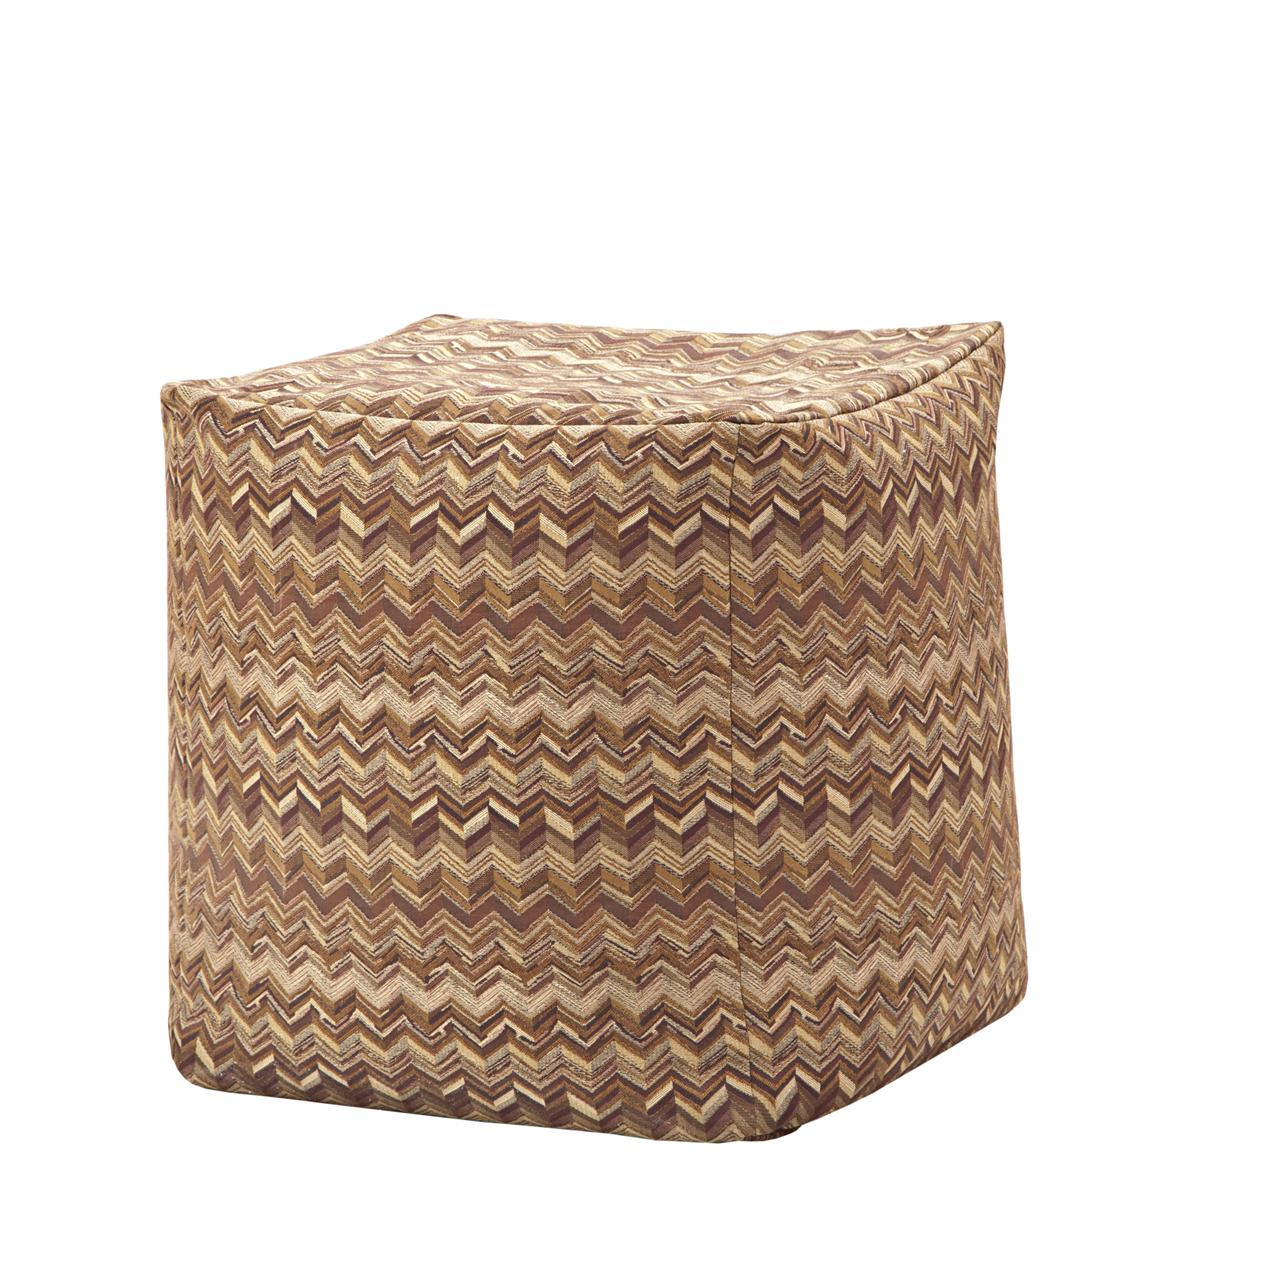 Pouf Madison Madison Park Emma Pouf Ottoman Two Beddingsuperstore